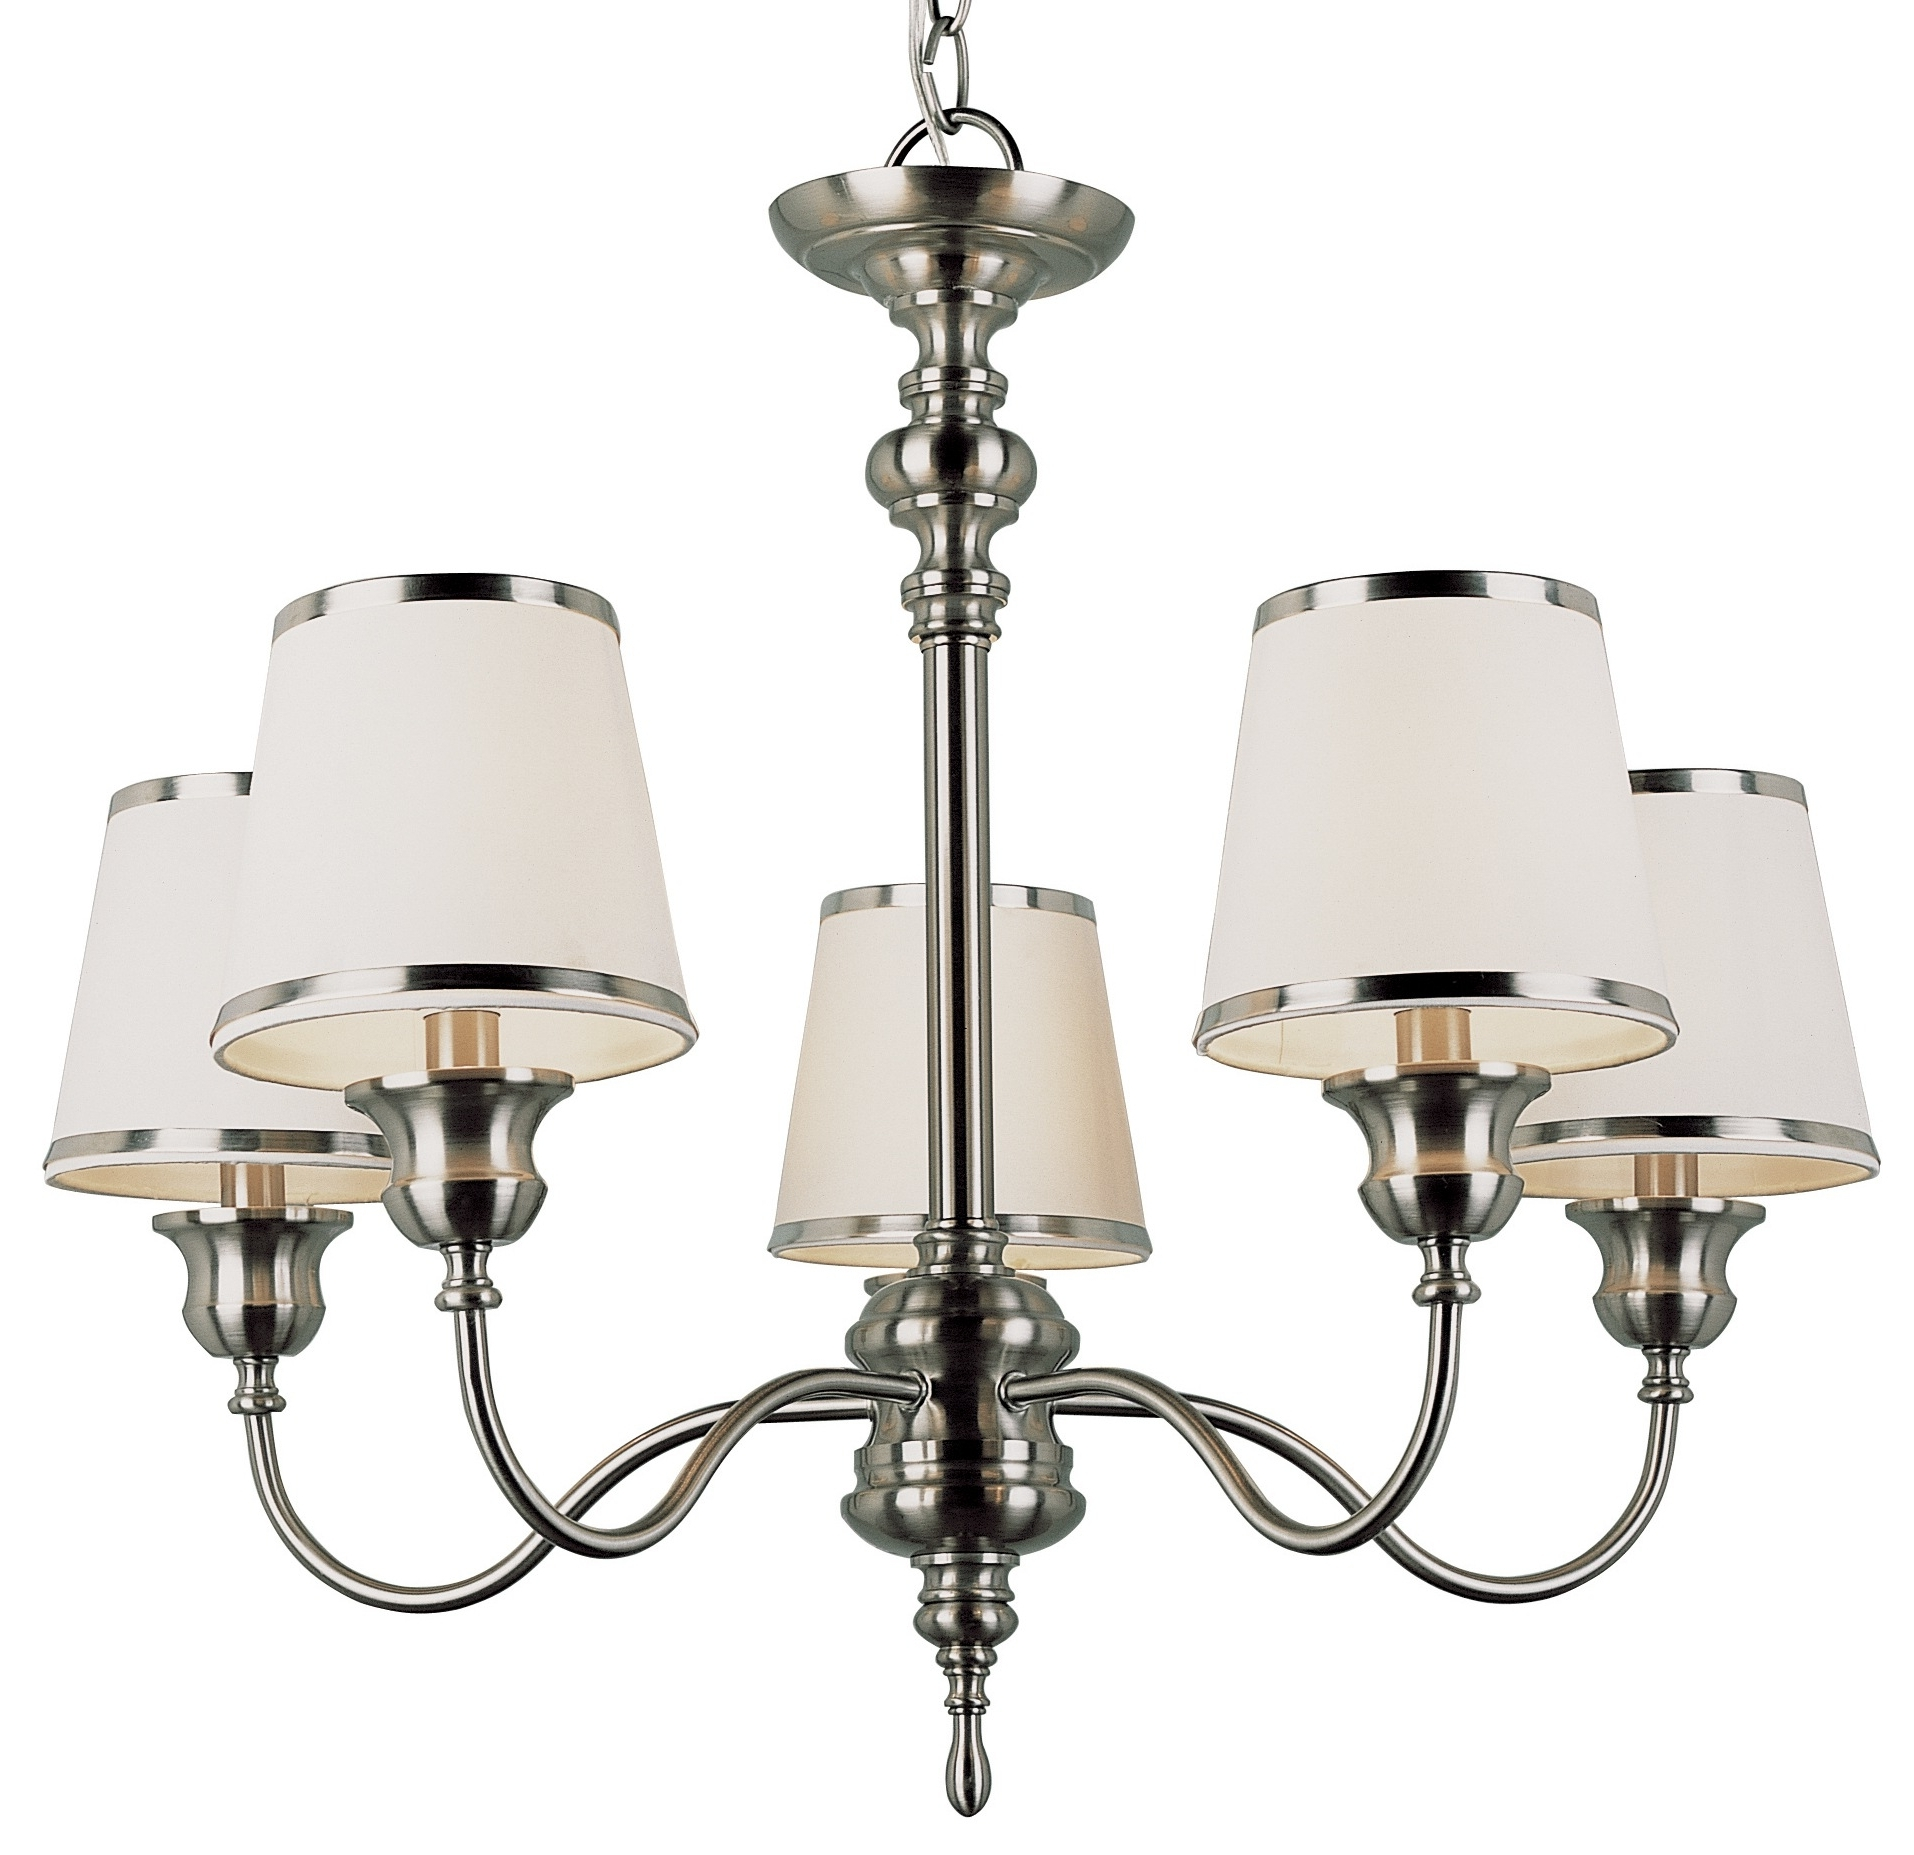 Chandeliers : Sheer Chandelier Lamp Shades Drum Mini Clip On Intended For Well Liked Clip On Drum Chandelier Shades (View 18 of 20)